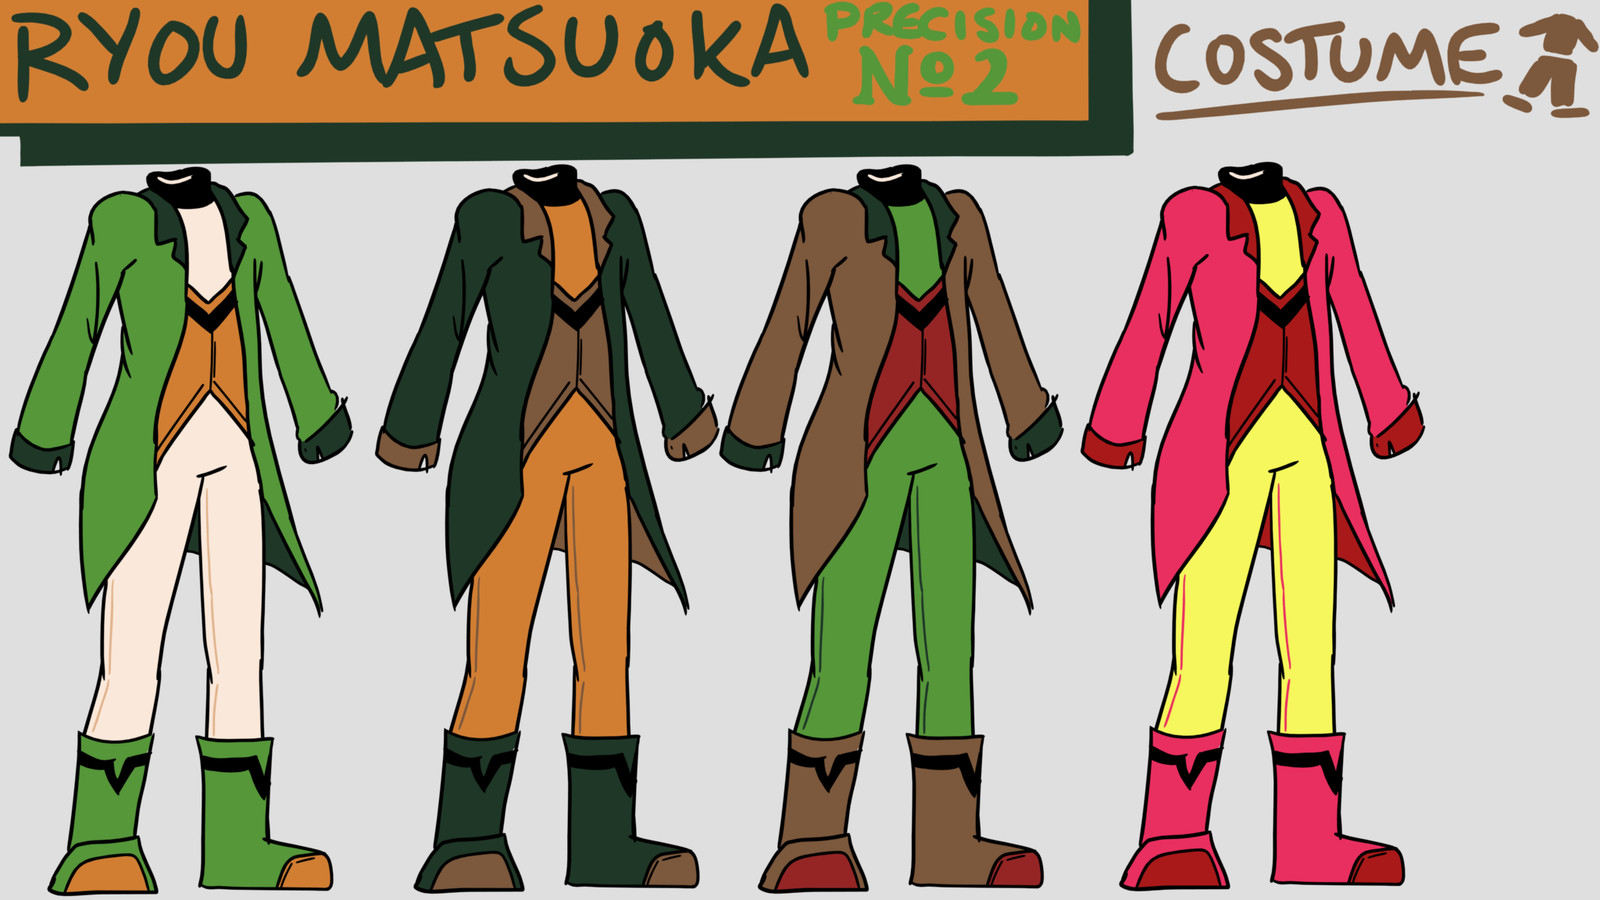 Alternate palettes for a man's costume. Designed for a video game.